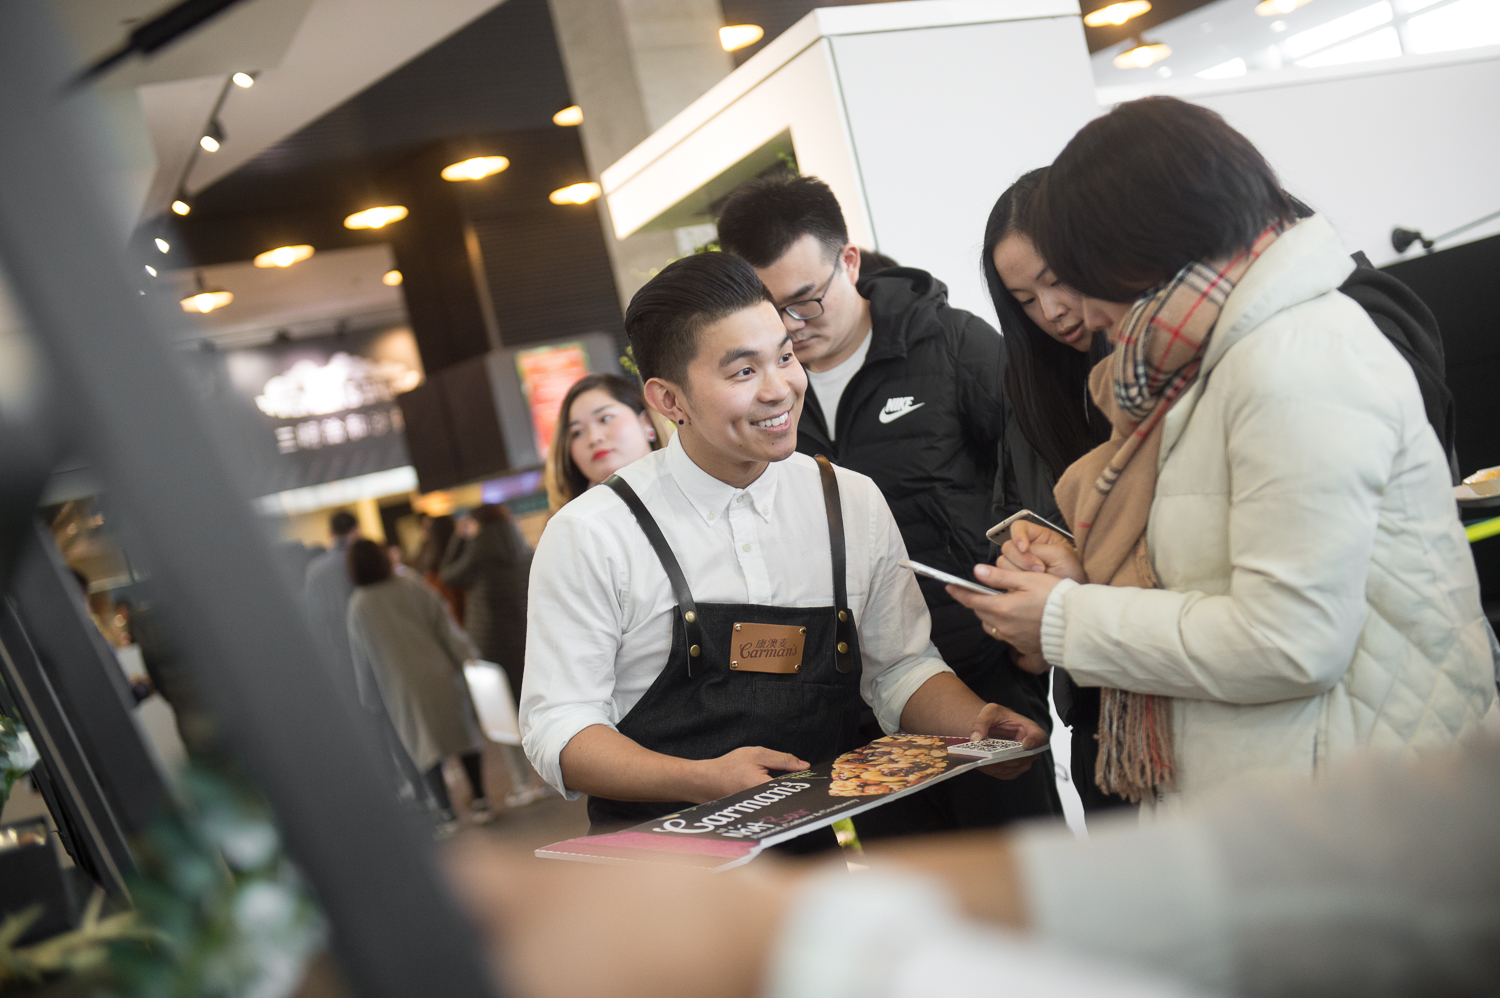 IDEA - To capture the attention of millennial staffers with a photo-worthy pop up experience- Engage top workplaces in Shanghai as venue partners - Build pop up cart + curate branded gift boxes for guests- Guests engage with high caliber brand ambassadors and premium positioning of Carman's hero product- Scan QR code to follow Carman's Wechat account for gifts - Create captivating content for social channels